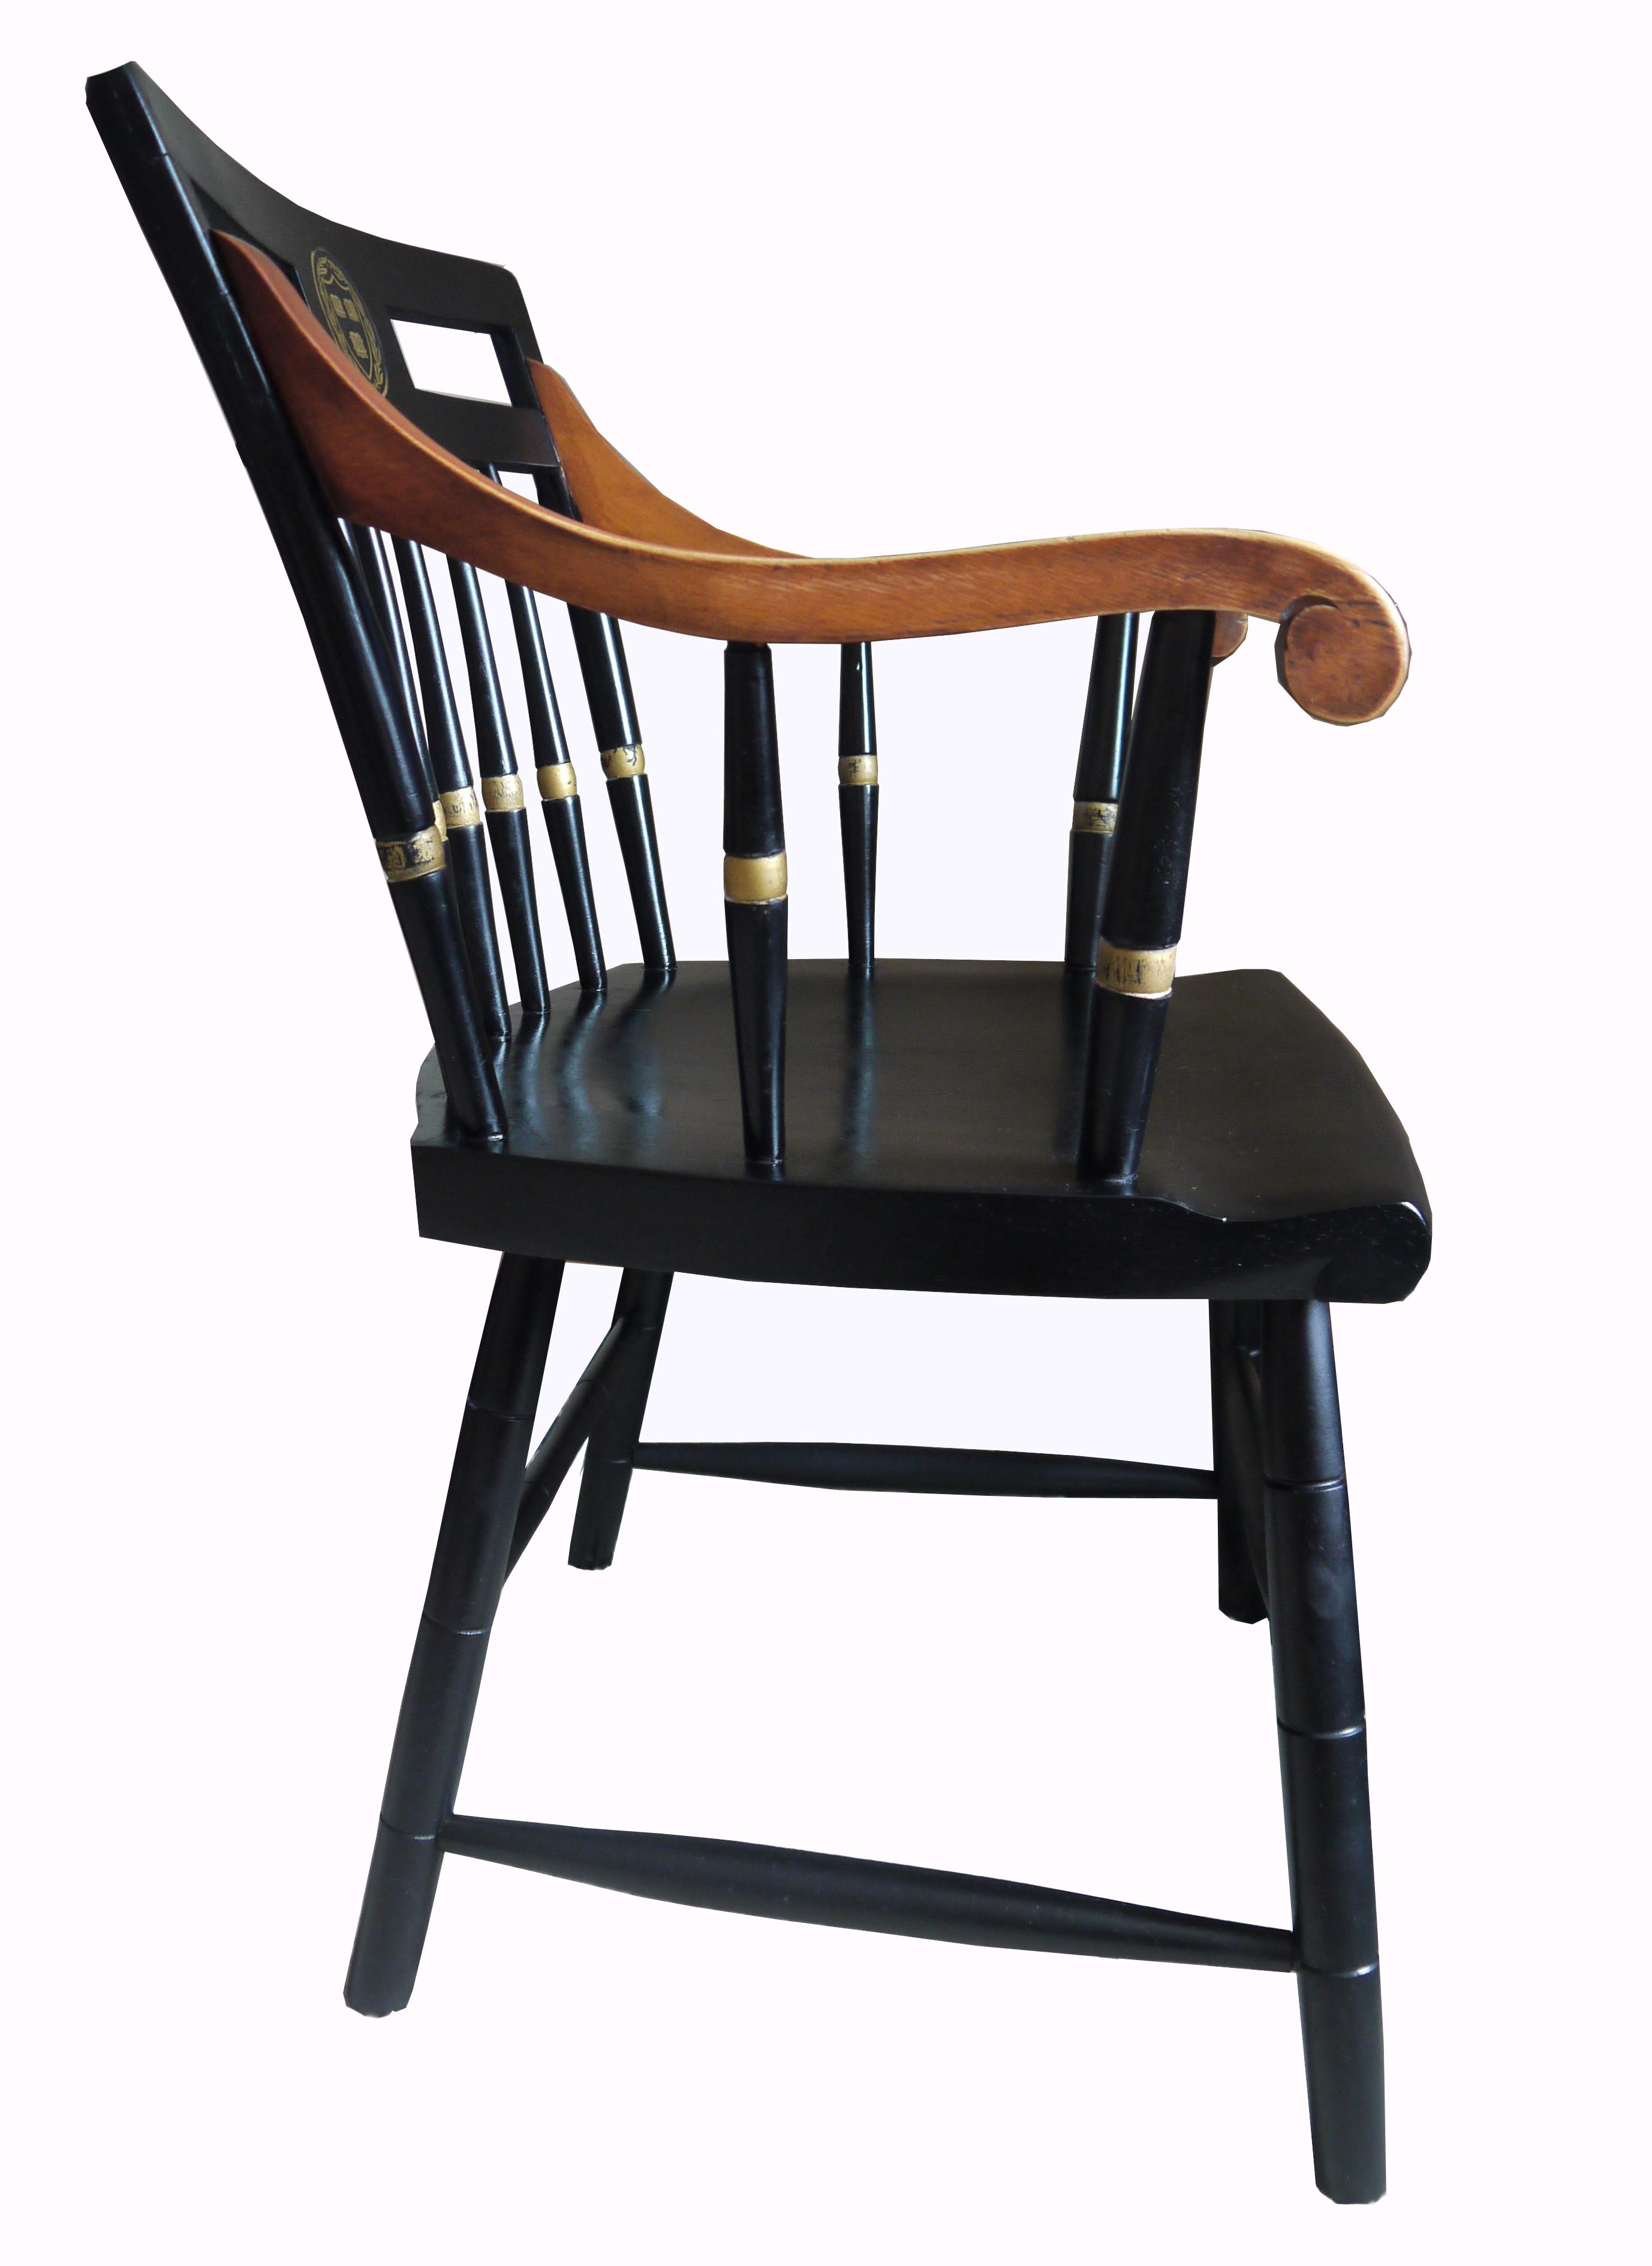 harvard chair for sale menards lawn chairs a penny vintage nichols stone windsor chairish early american image 3 of 10